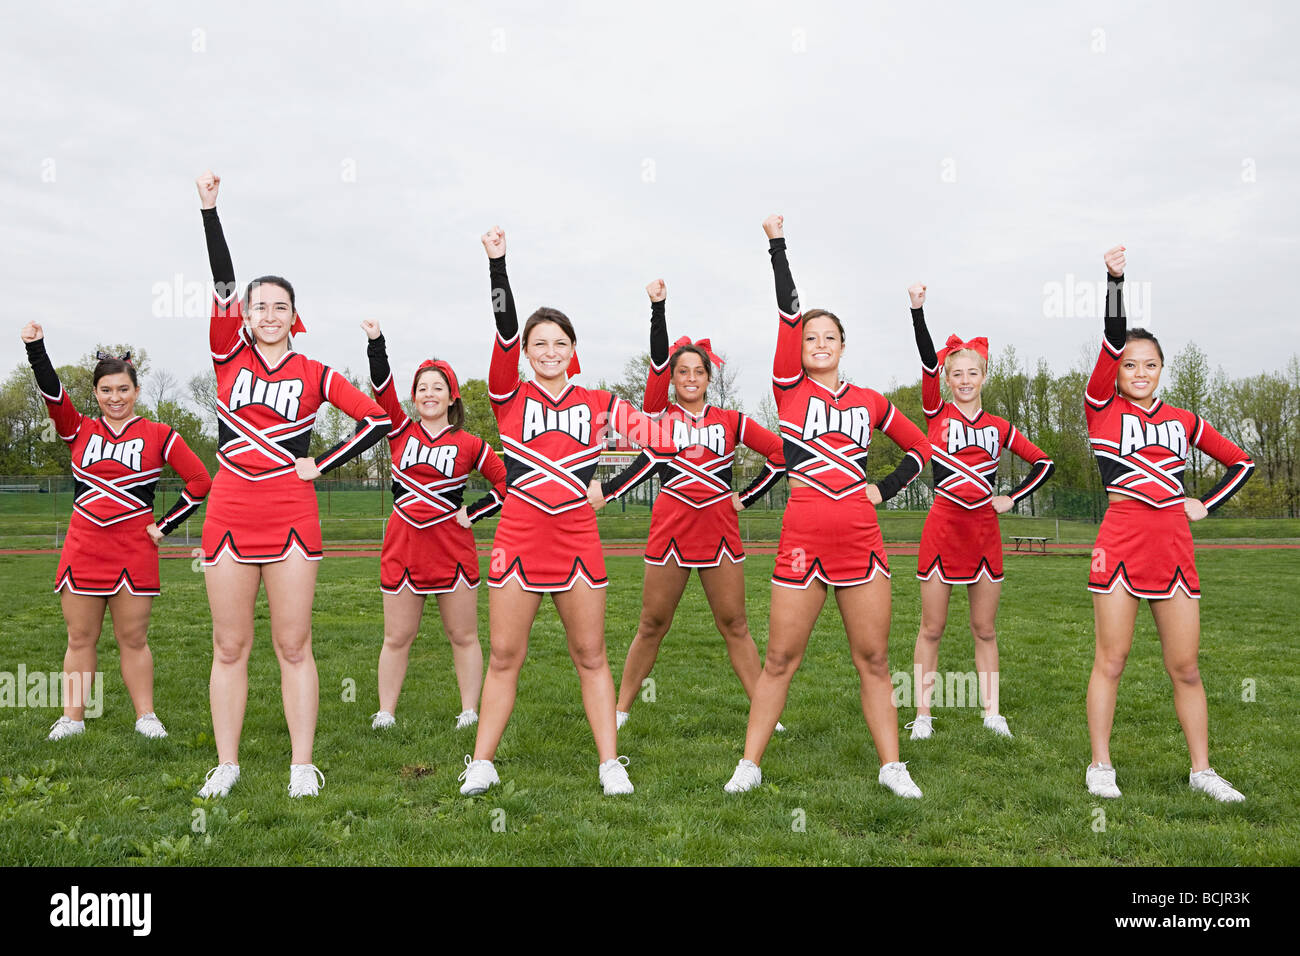 Cheerleaders - Stock Image